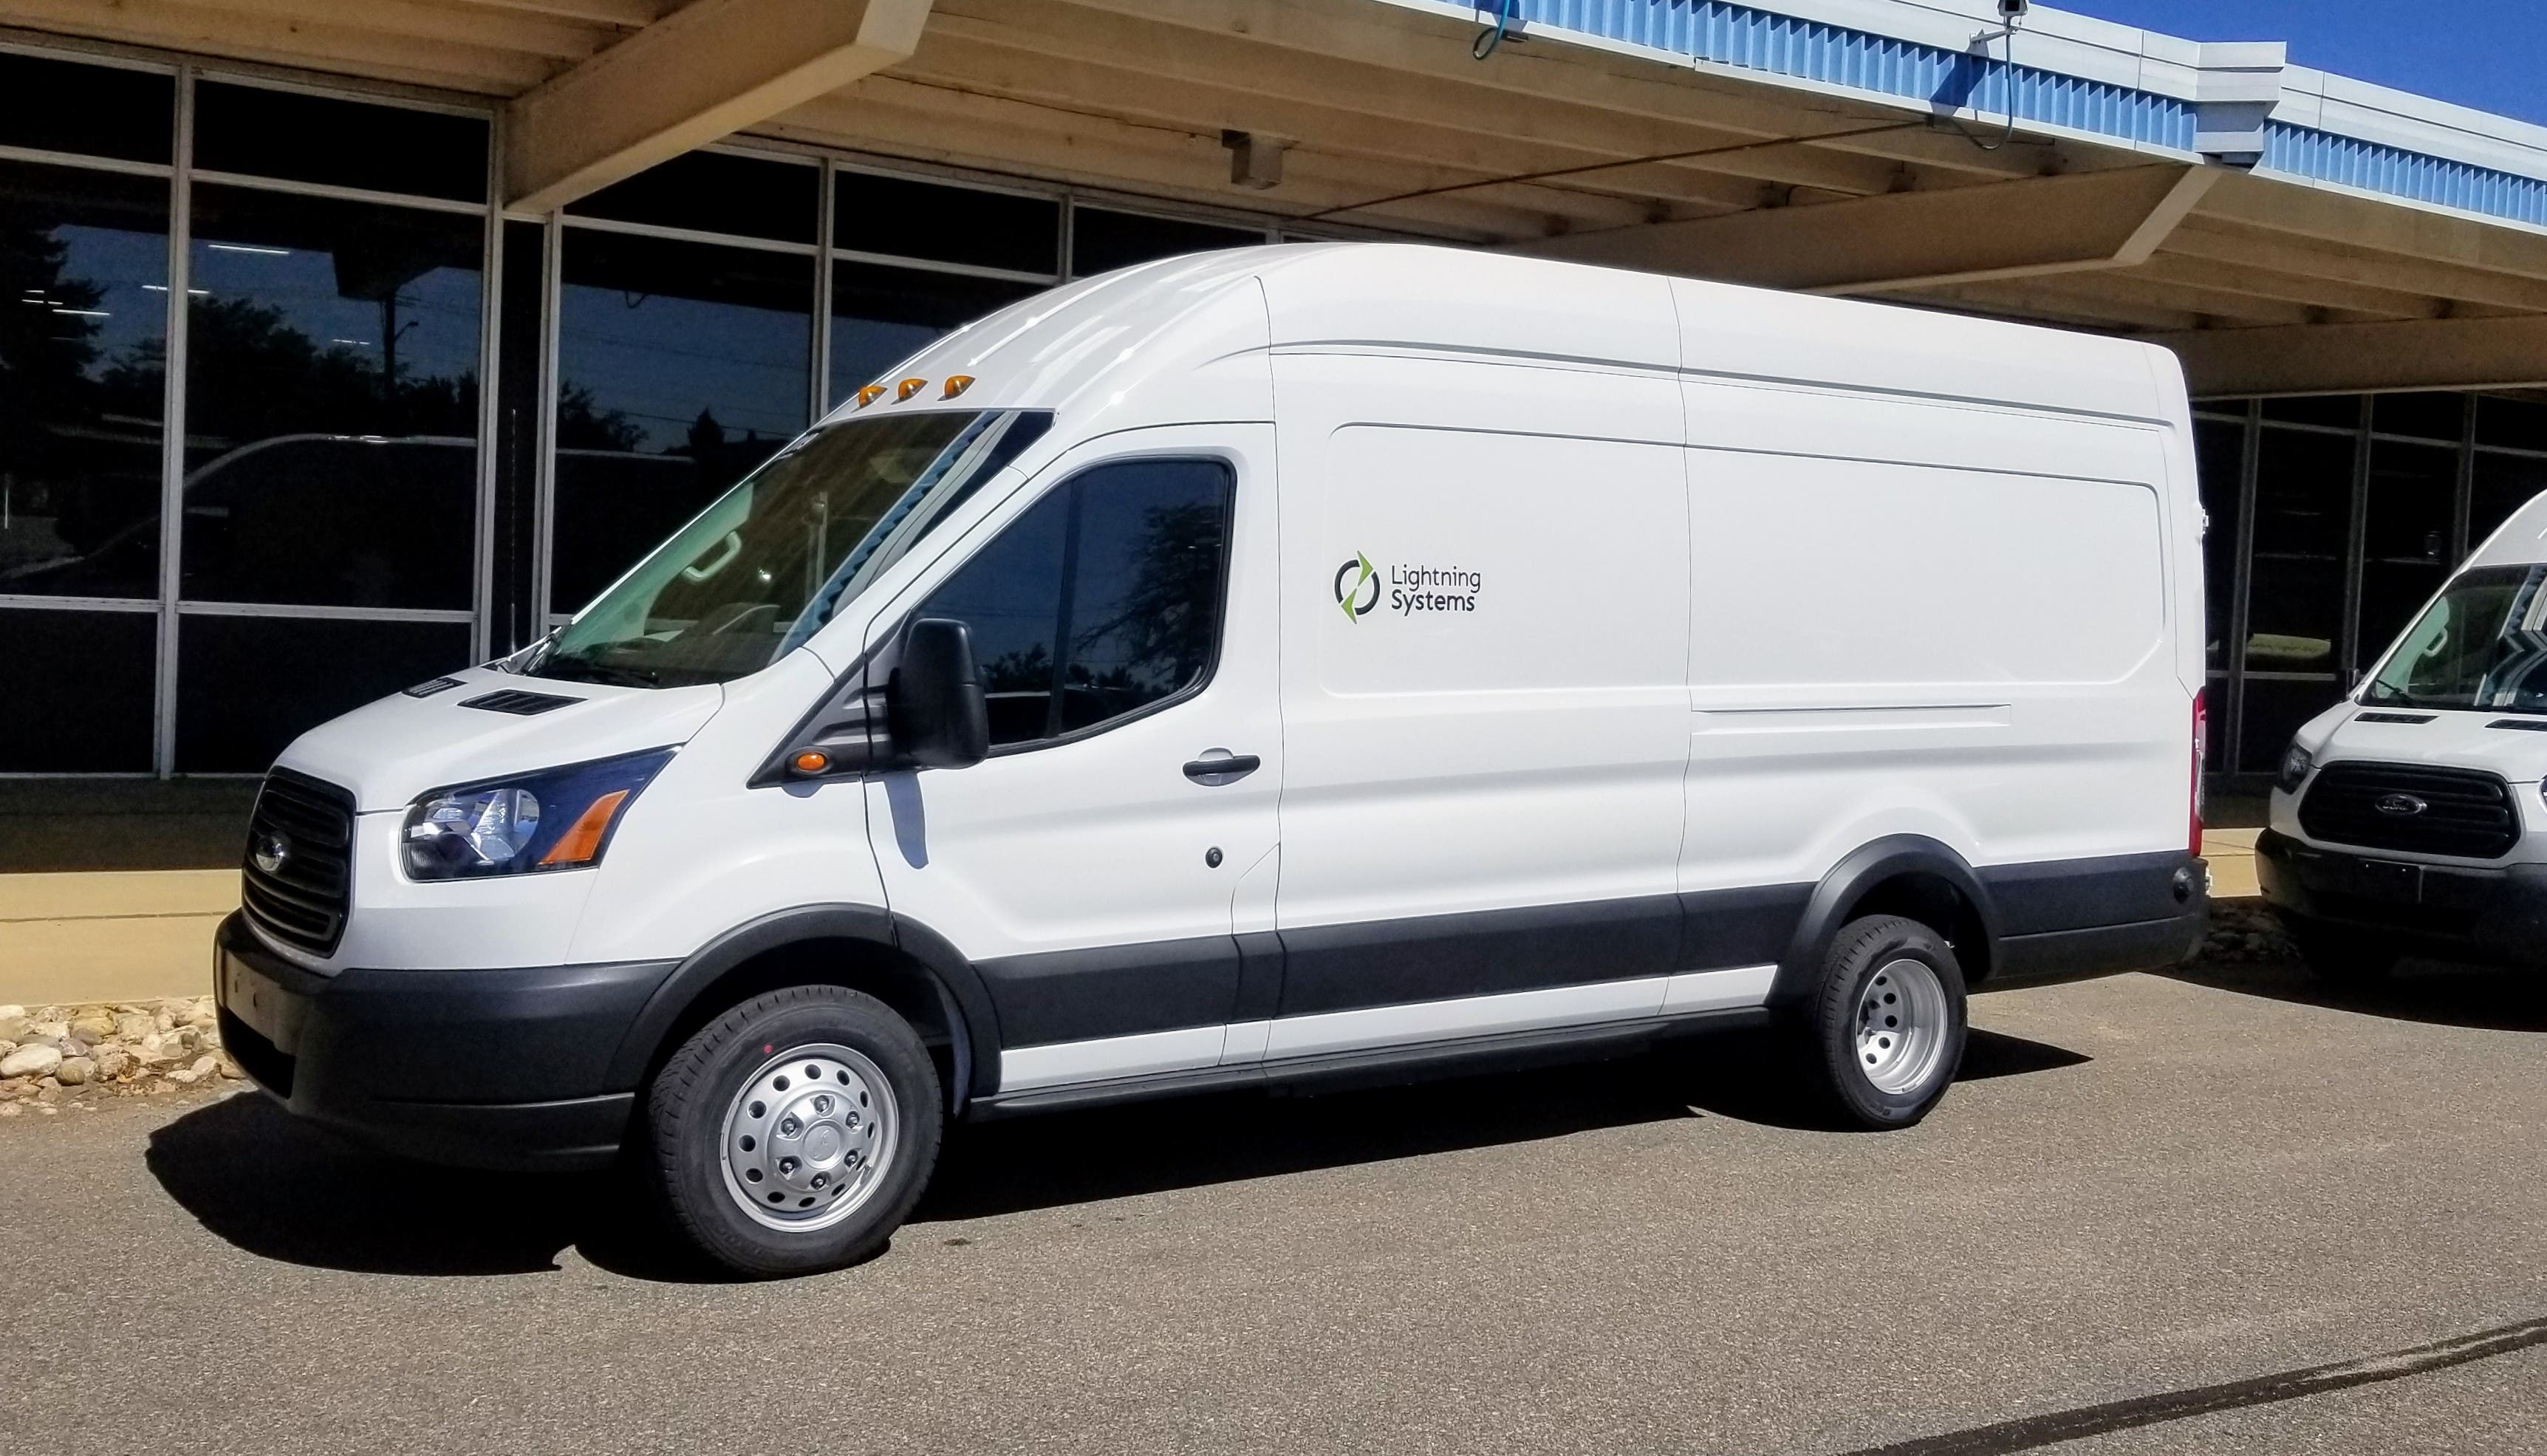 A fully electric Lightning Systems Ford Transit.